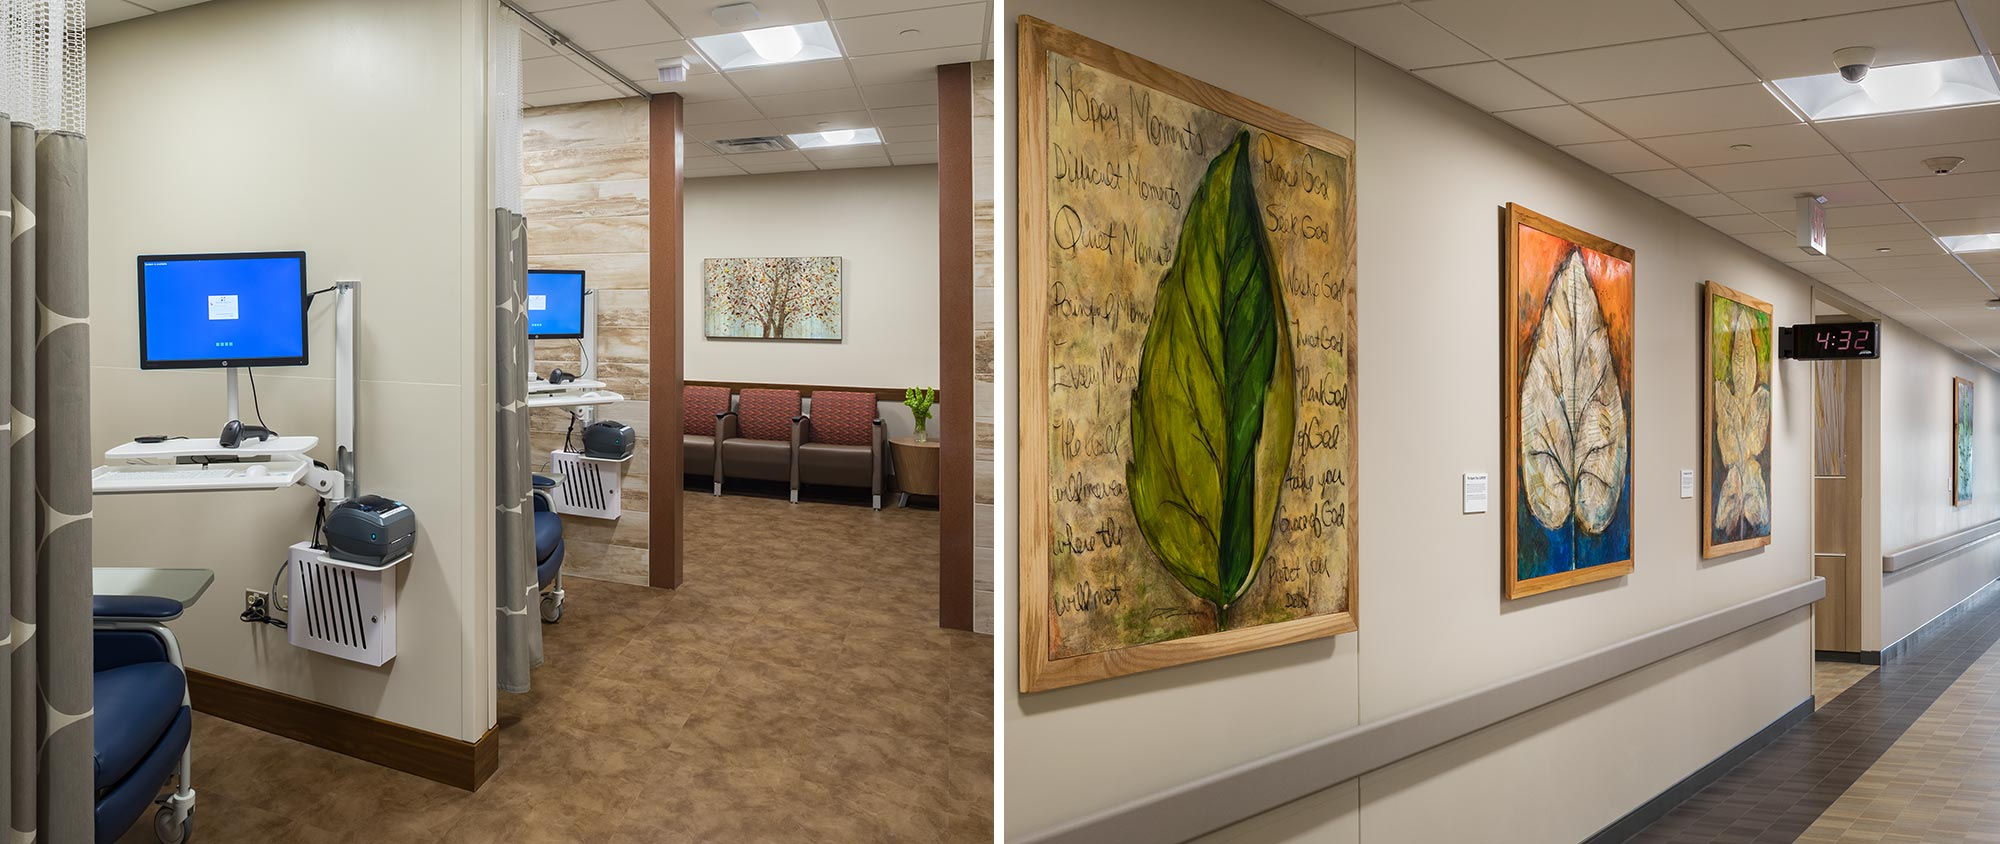 Baptist Health Paducah Ray & Kay Eckstein Regional Cancer Center